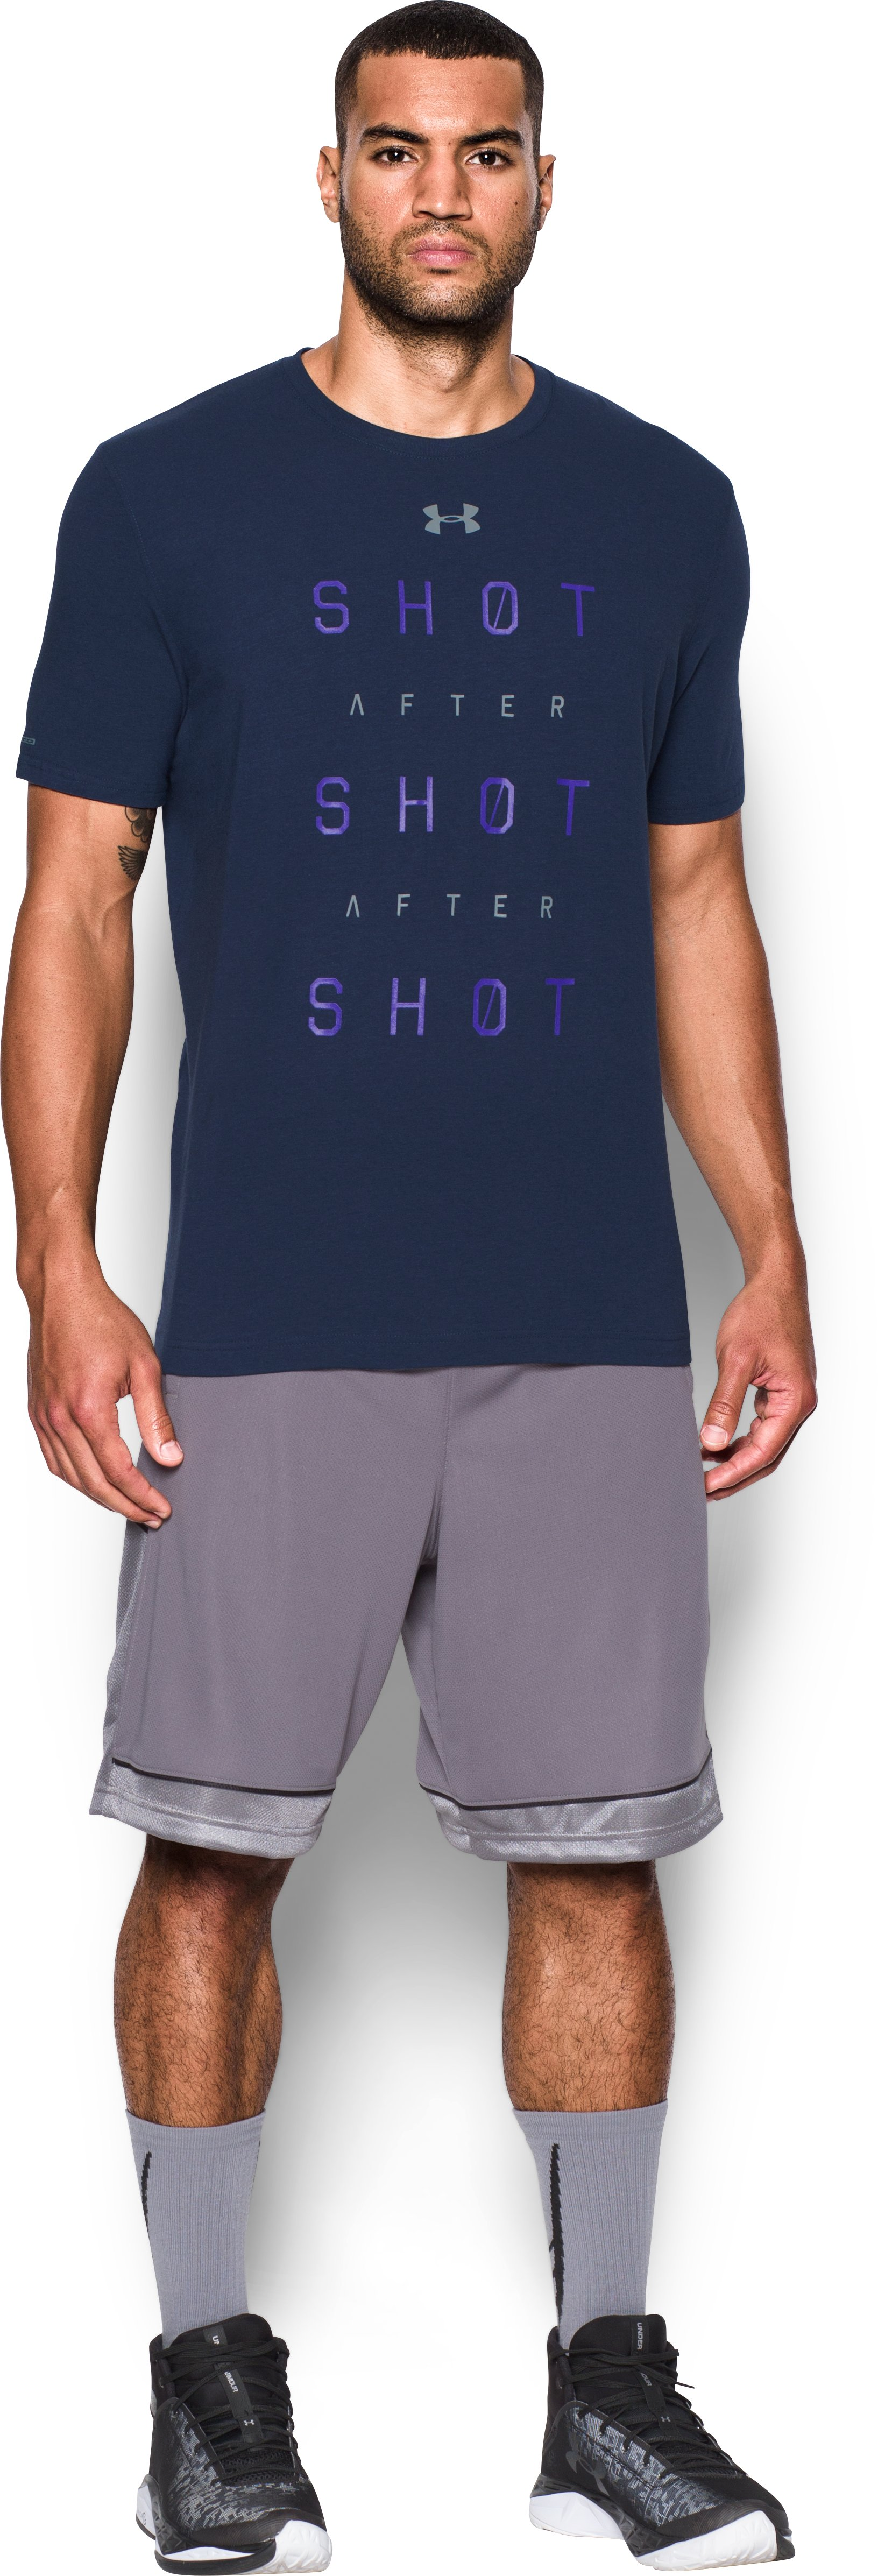 Men's UA Shot After Shot After Shot T-Shirt, Midnight Navy, zoomed image